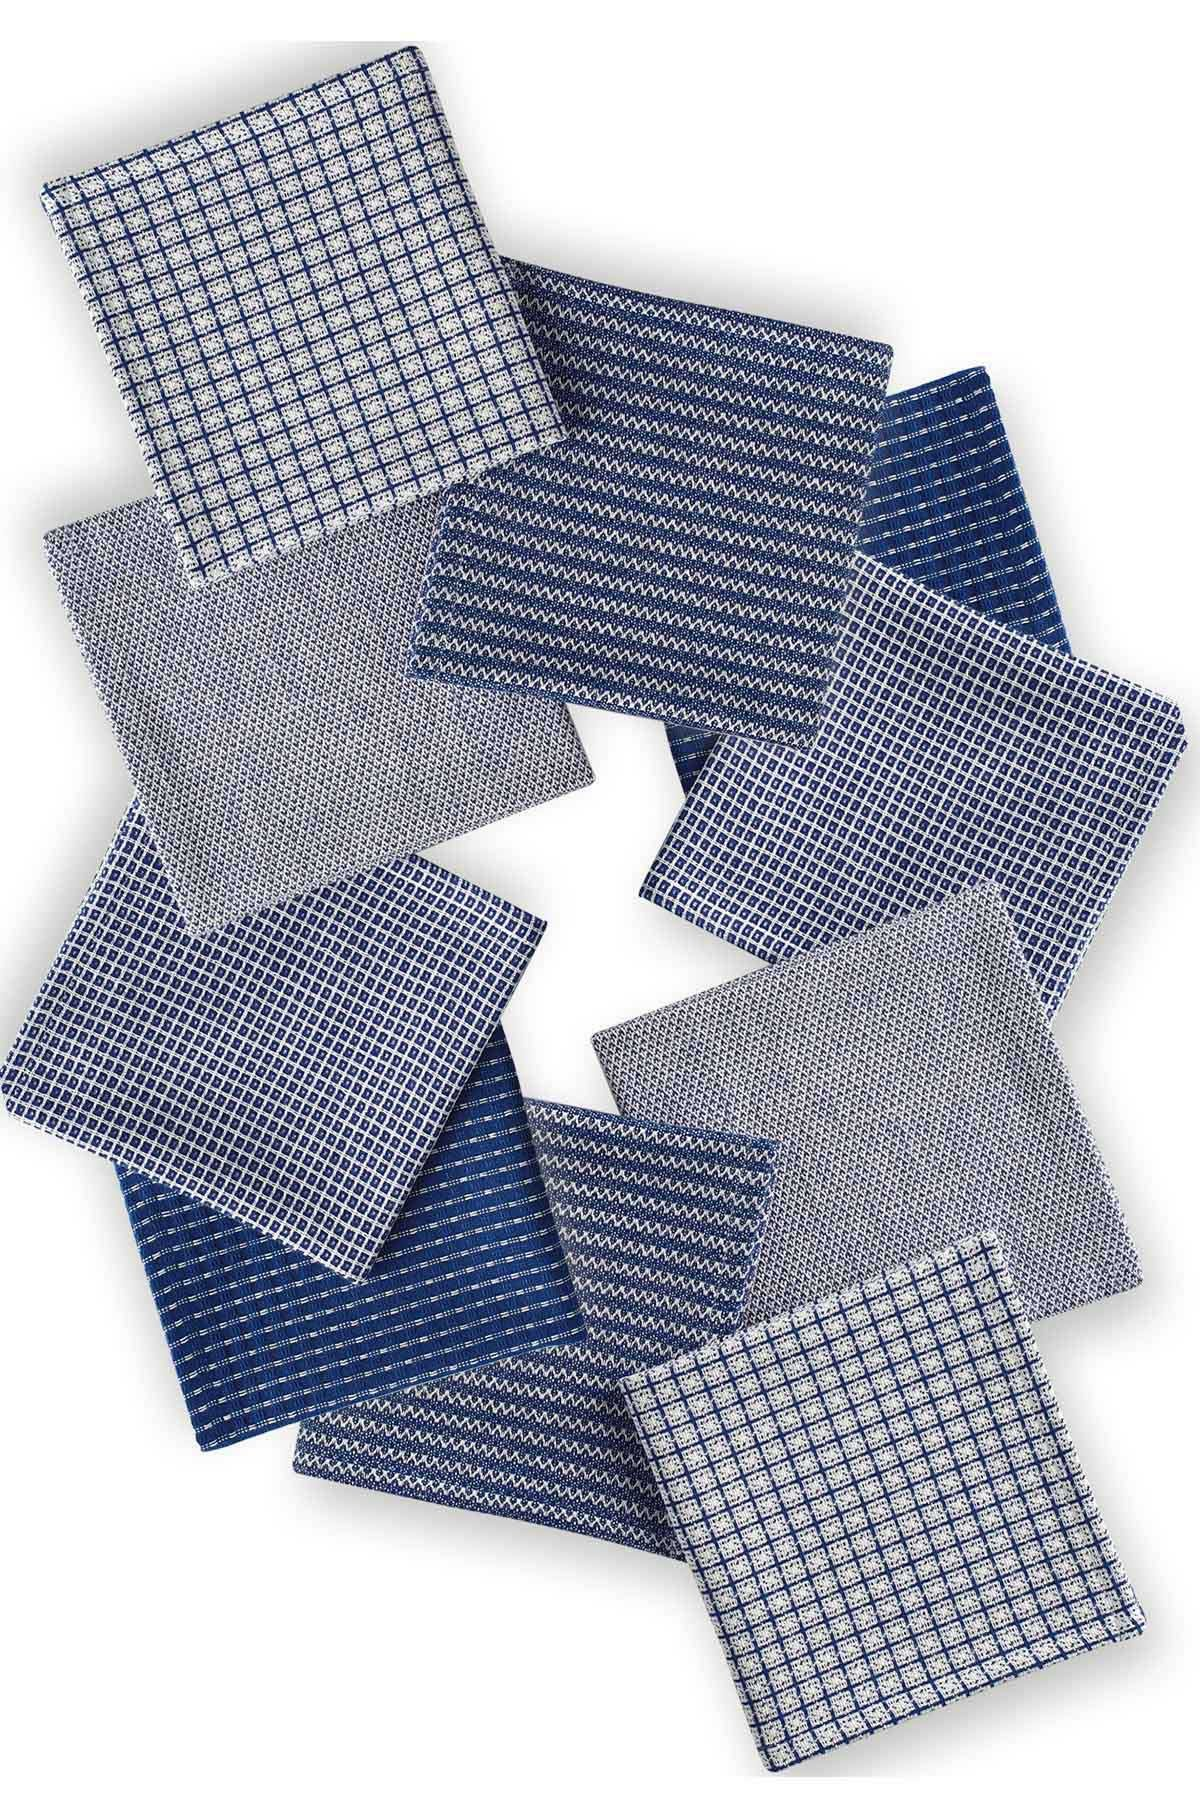 DII COSD35164 Cotton Everyday Dishcloths, Machine Washable Ultra Absorbent Bar Towels, Perfect Home and Kitchen, 13x13, Blue and White Capri